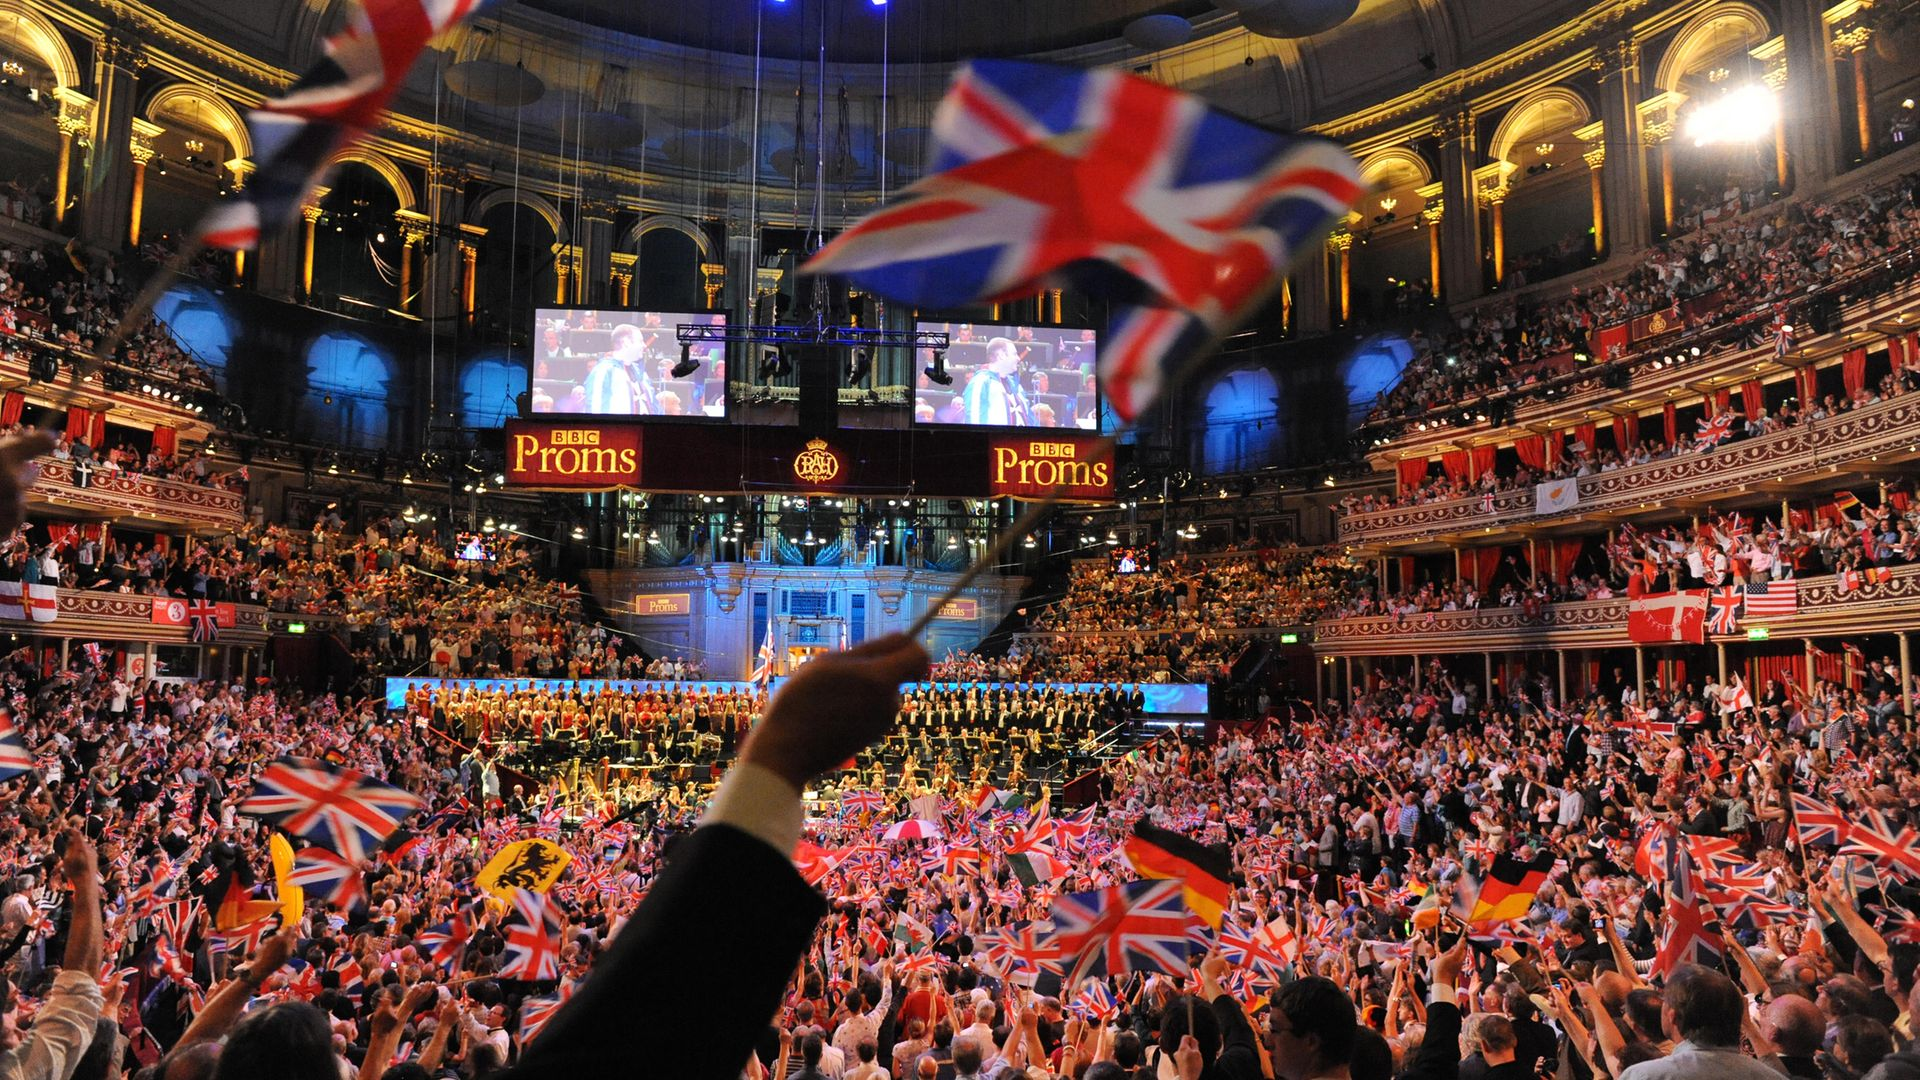 Union flags (and those of other nations) are waved during the climax of Last Night of the Proms - Credit: Redferns via Getty Images